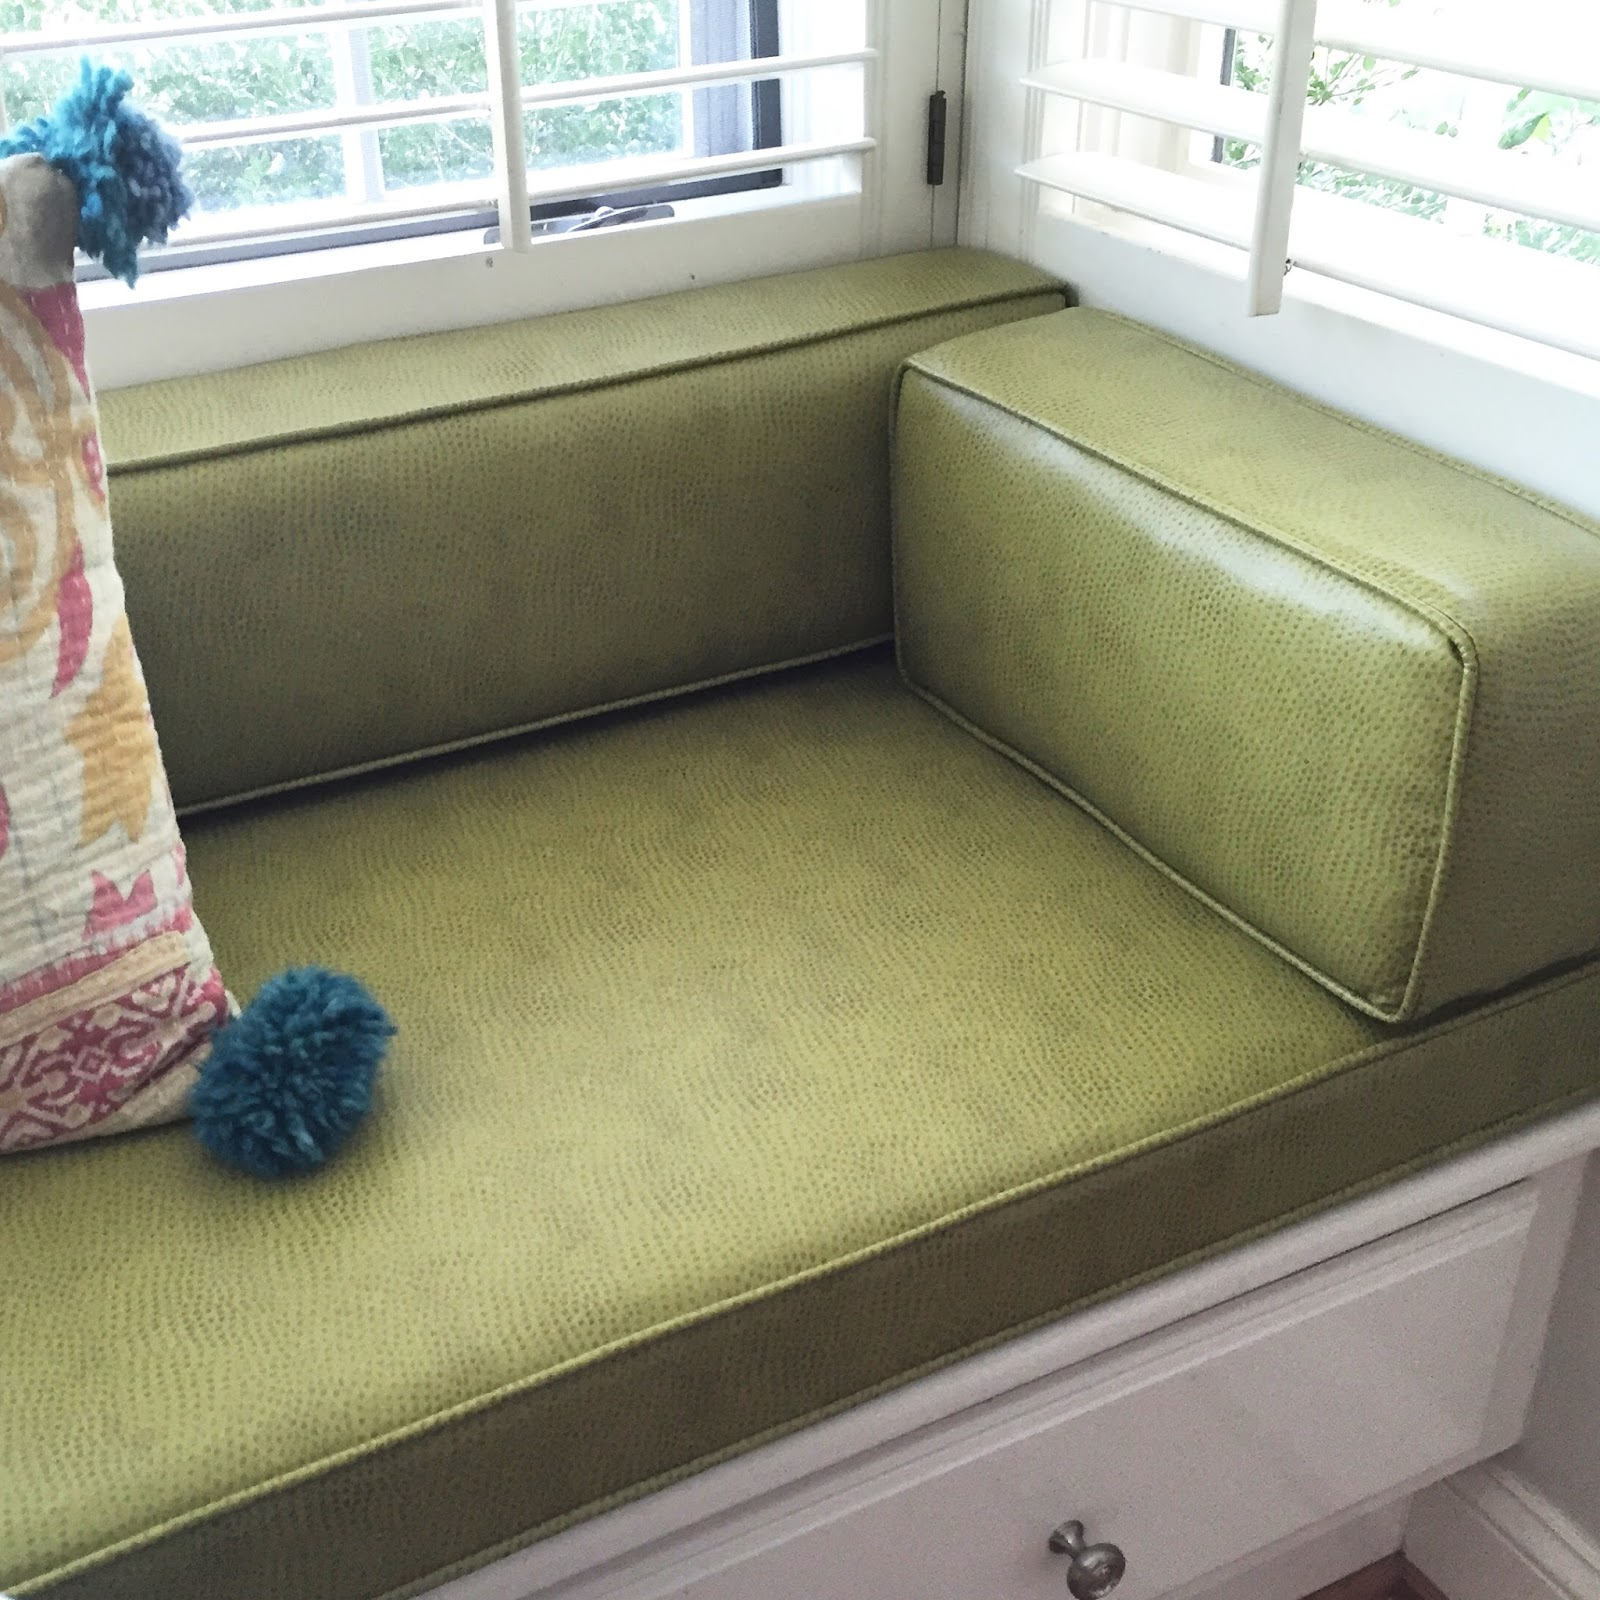 Loveyourroom Try Square Back Cushions For Kitchen Built In Benches